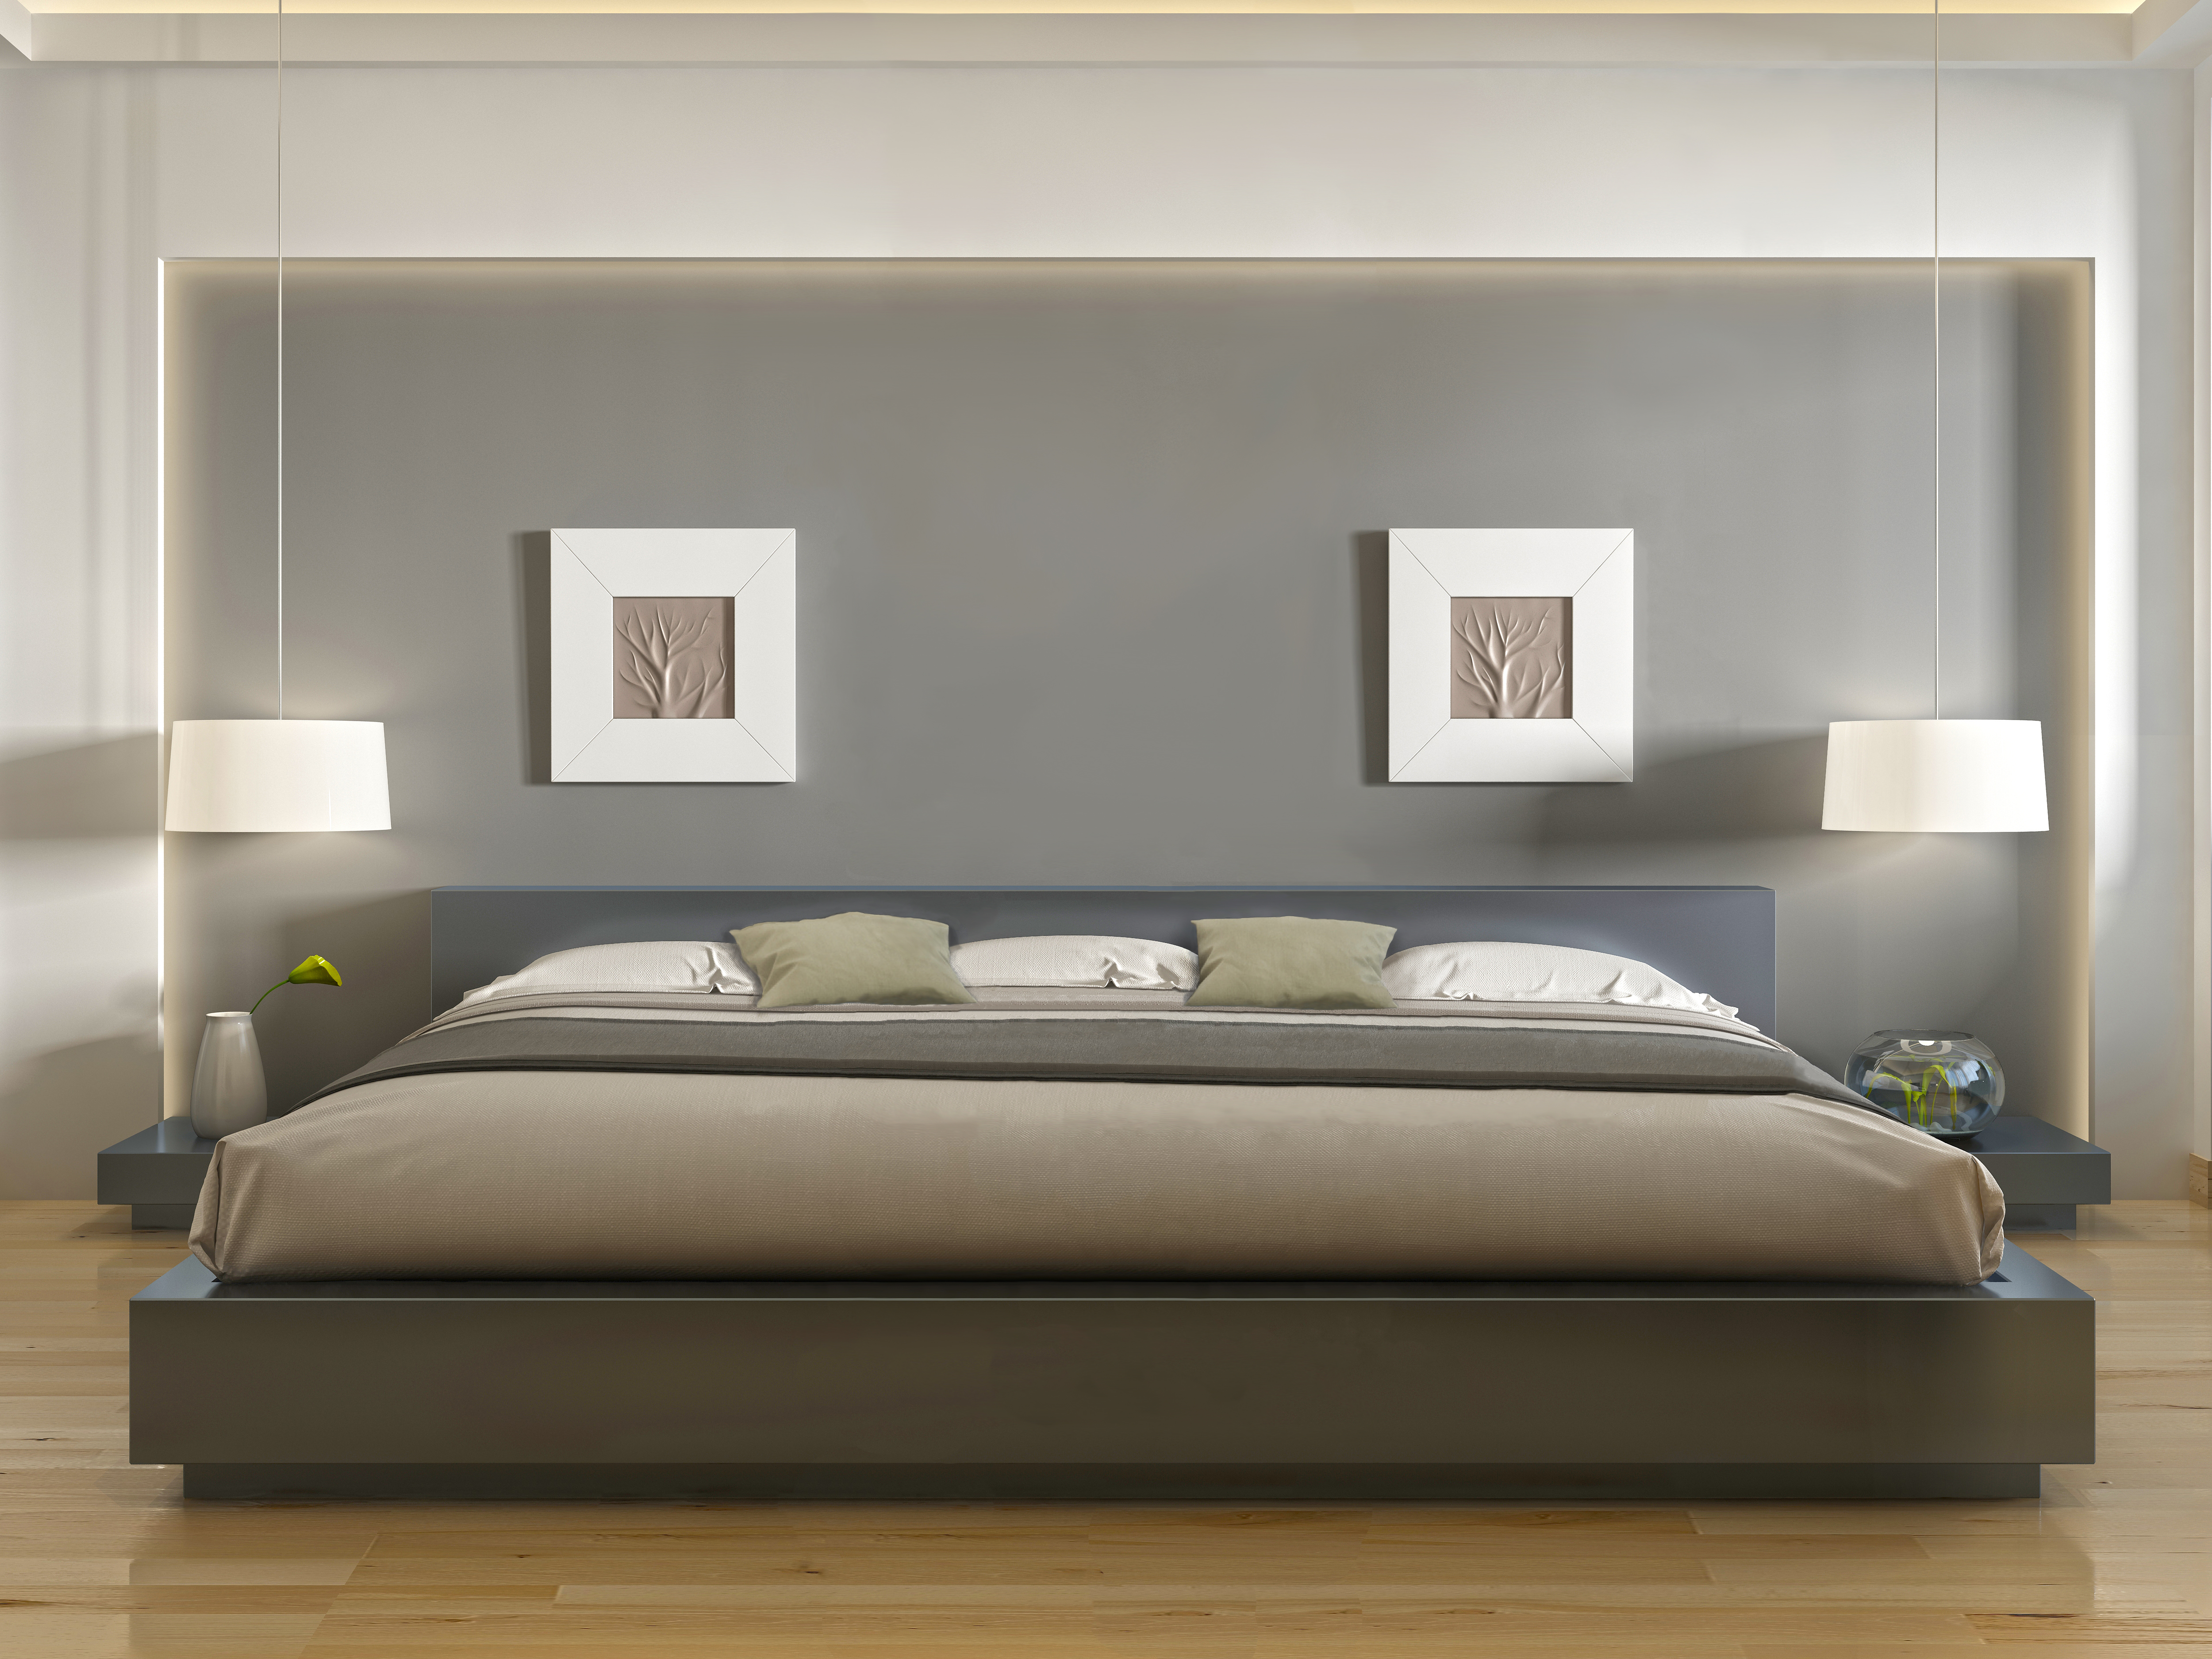 family-size-bed.jpg